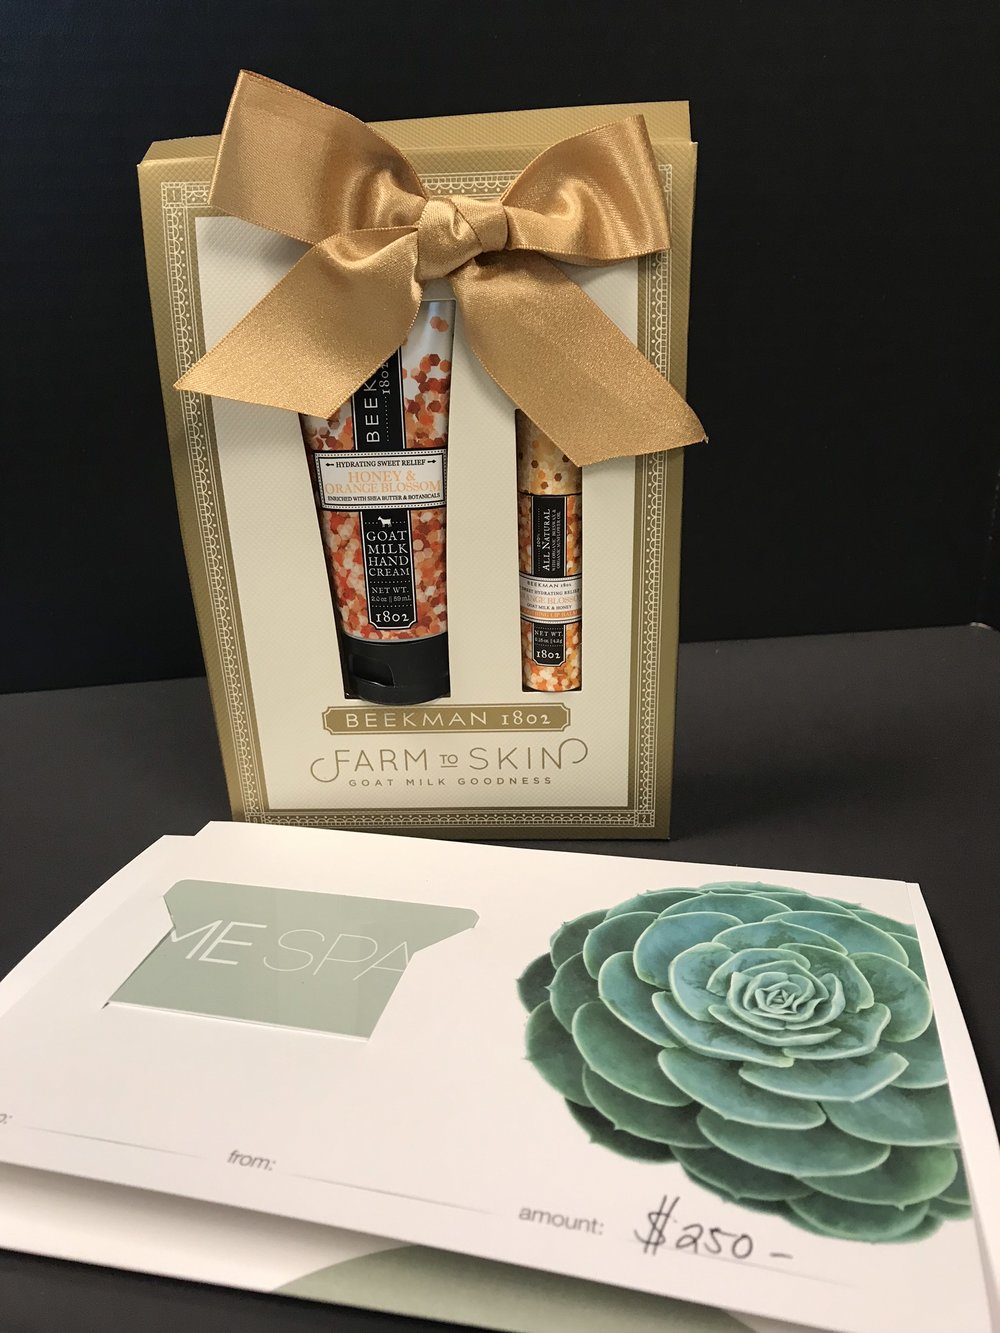 Me Spa $250 gift certificate and hand cream set - value of $265